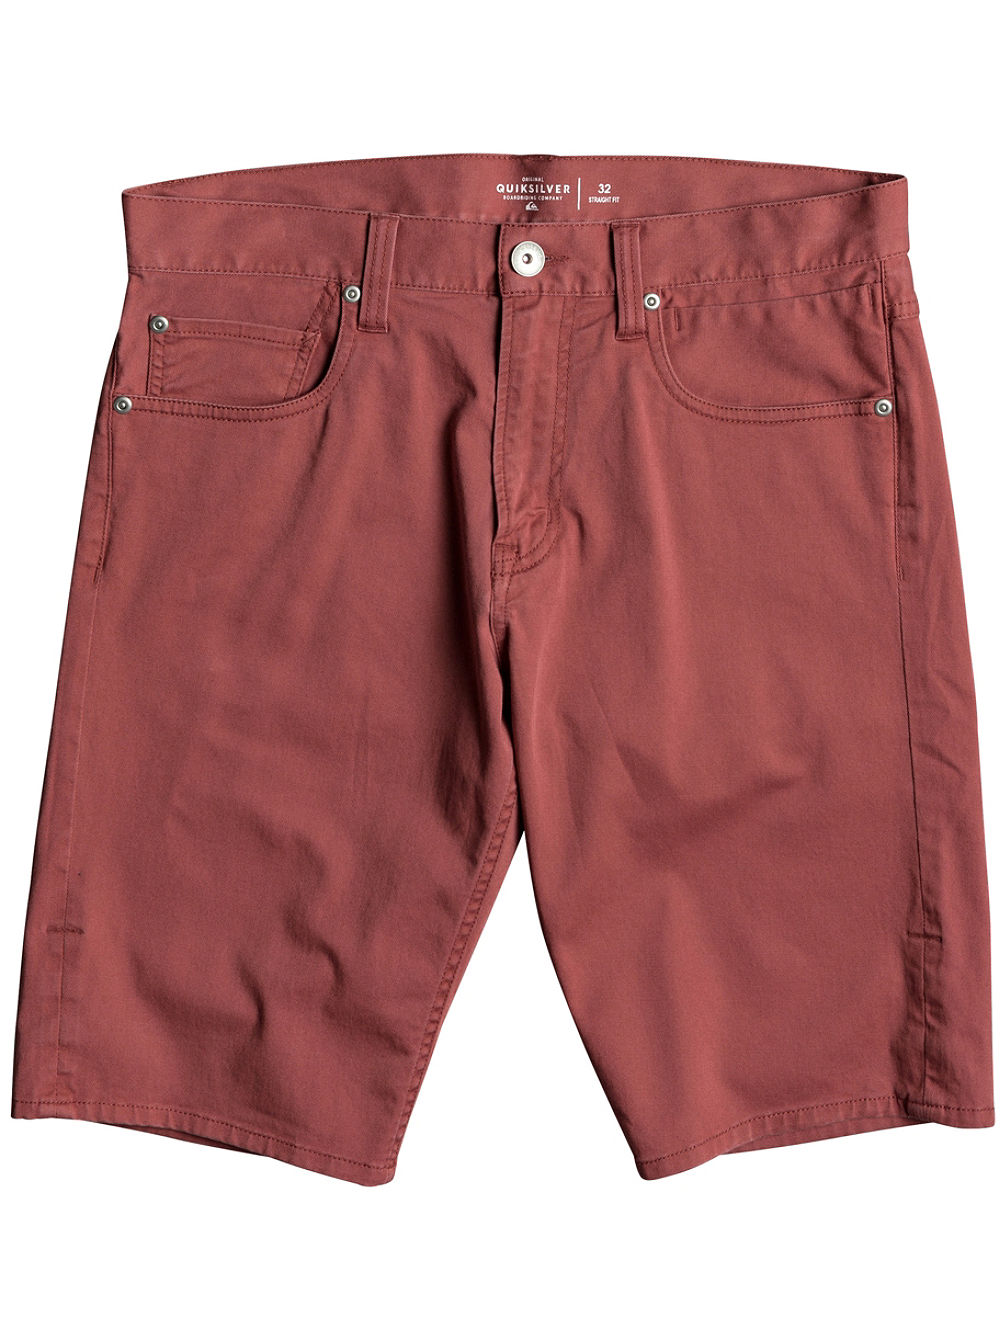 490e7eb2699 Buy Quiksilver Lygon Shorts online at Blue Tomato